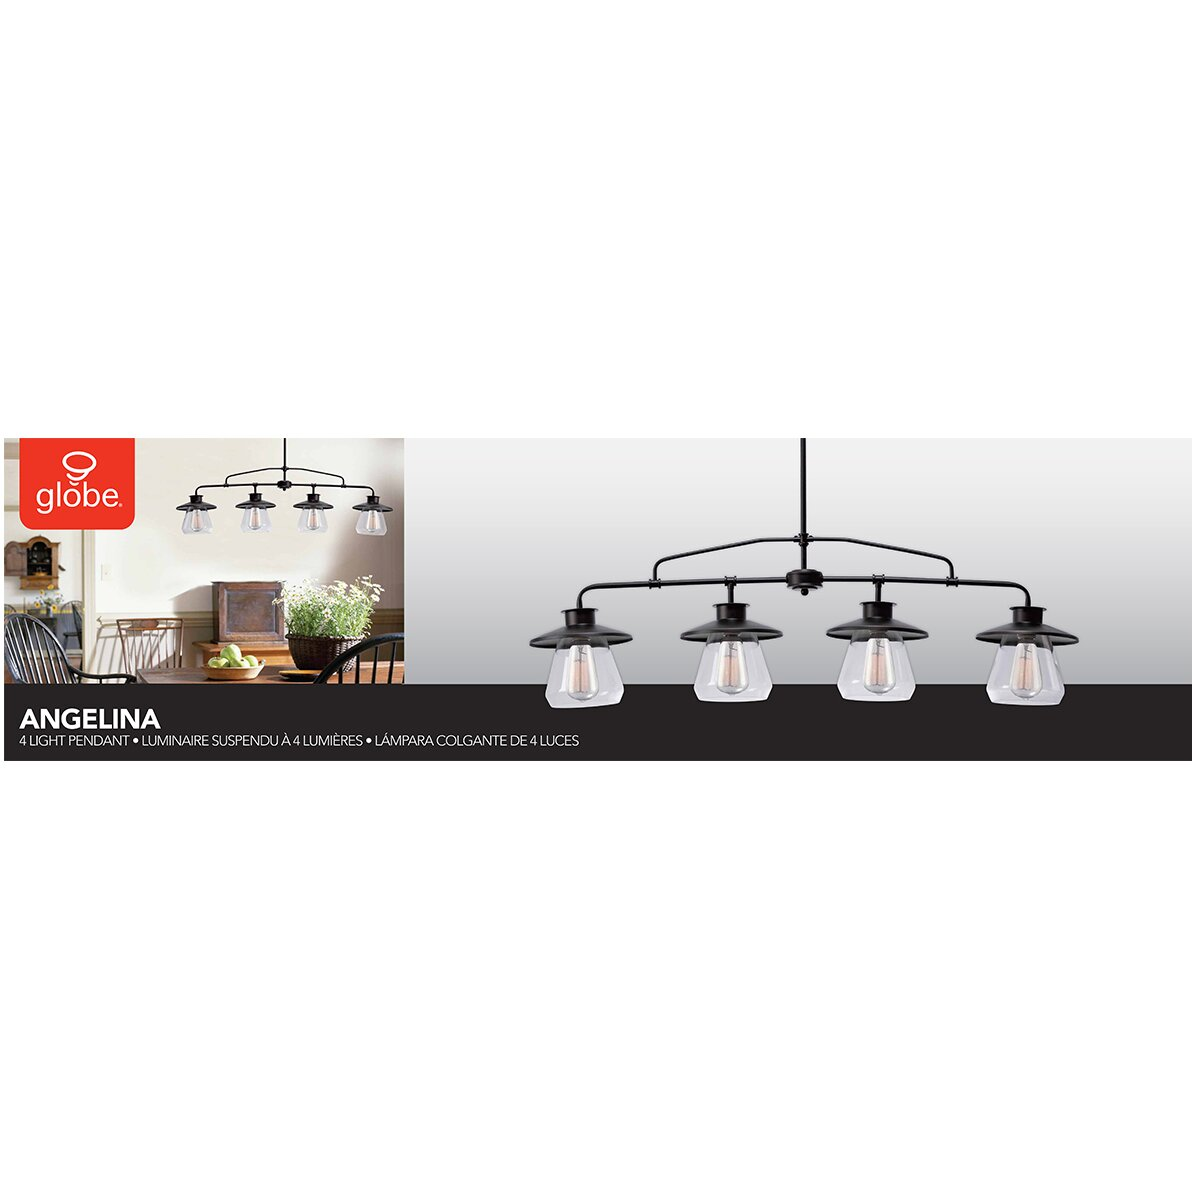 Angelica 4 light kitchen island pendant wayfair - Angelica kitchen delivery ...